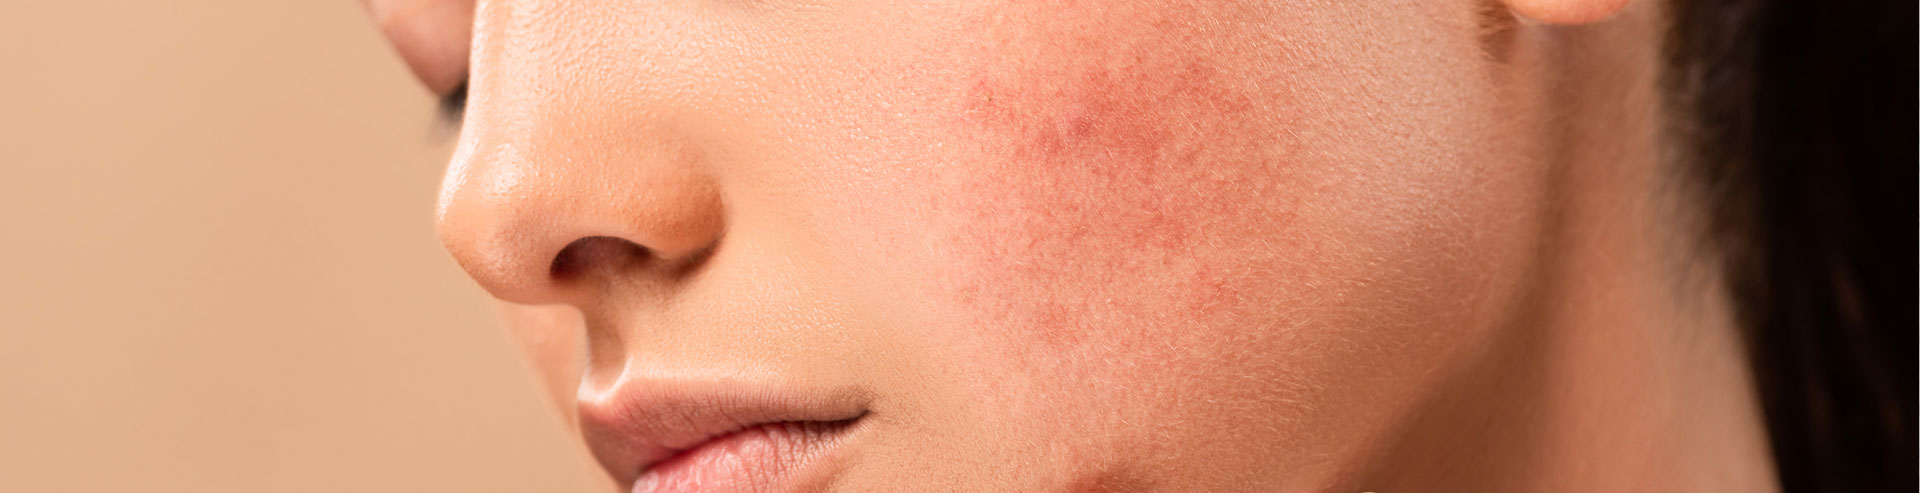 Young woman with acne on face